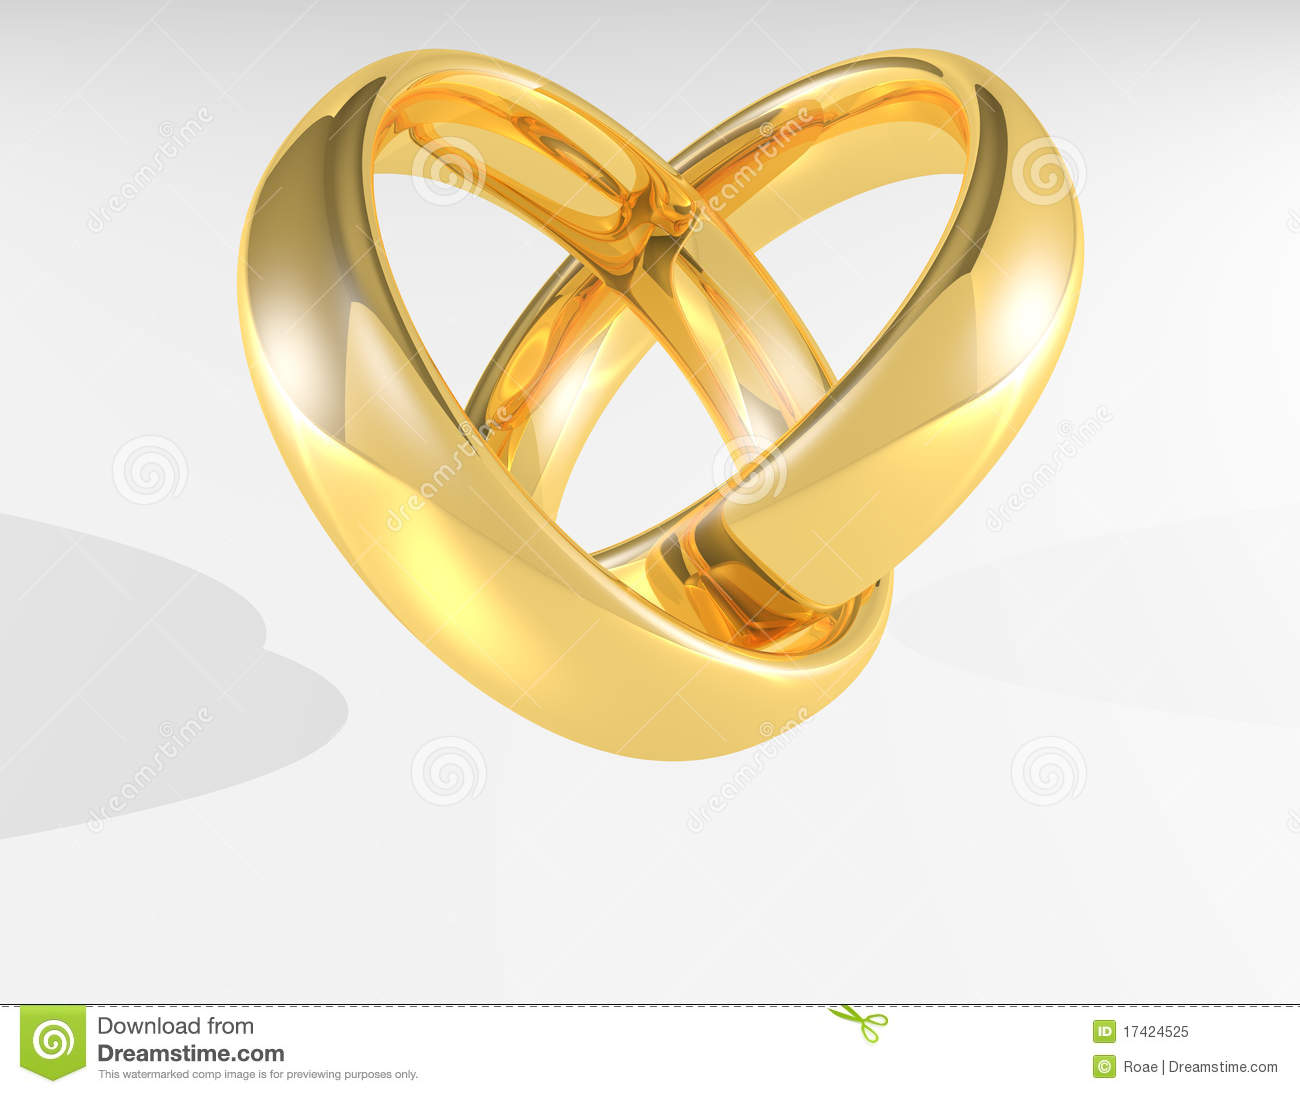 heart gold wedding rings stock illustration illustration